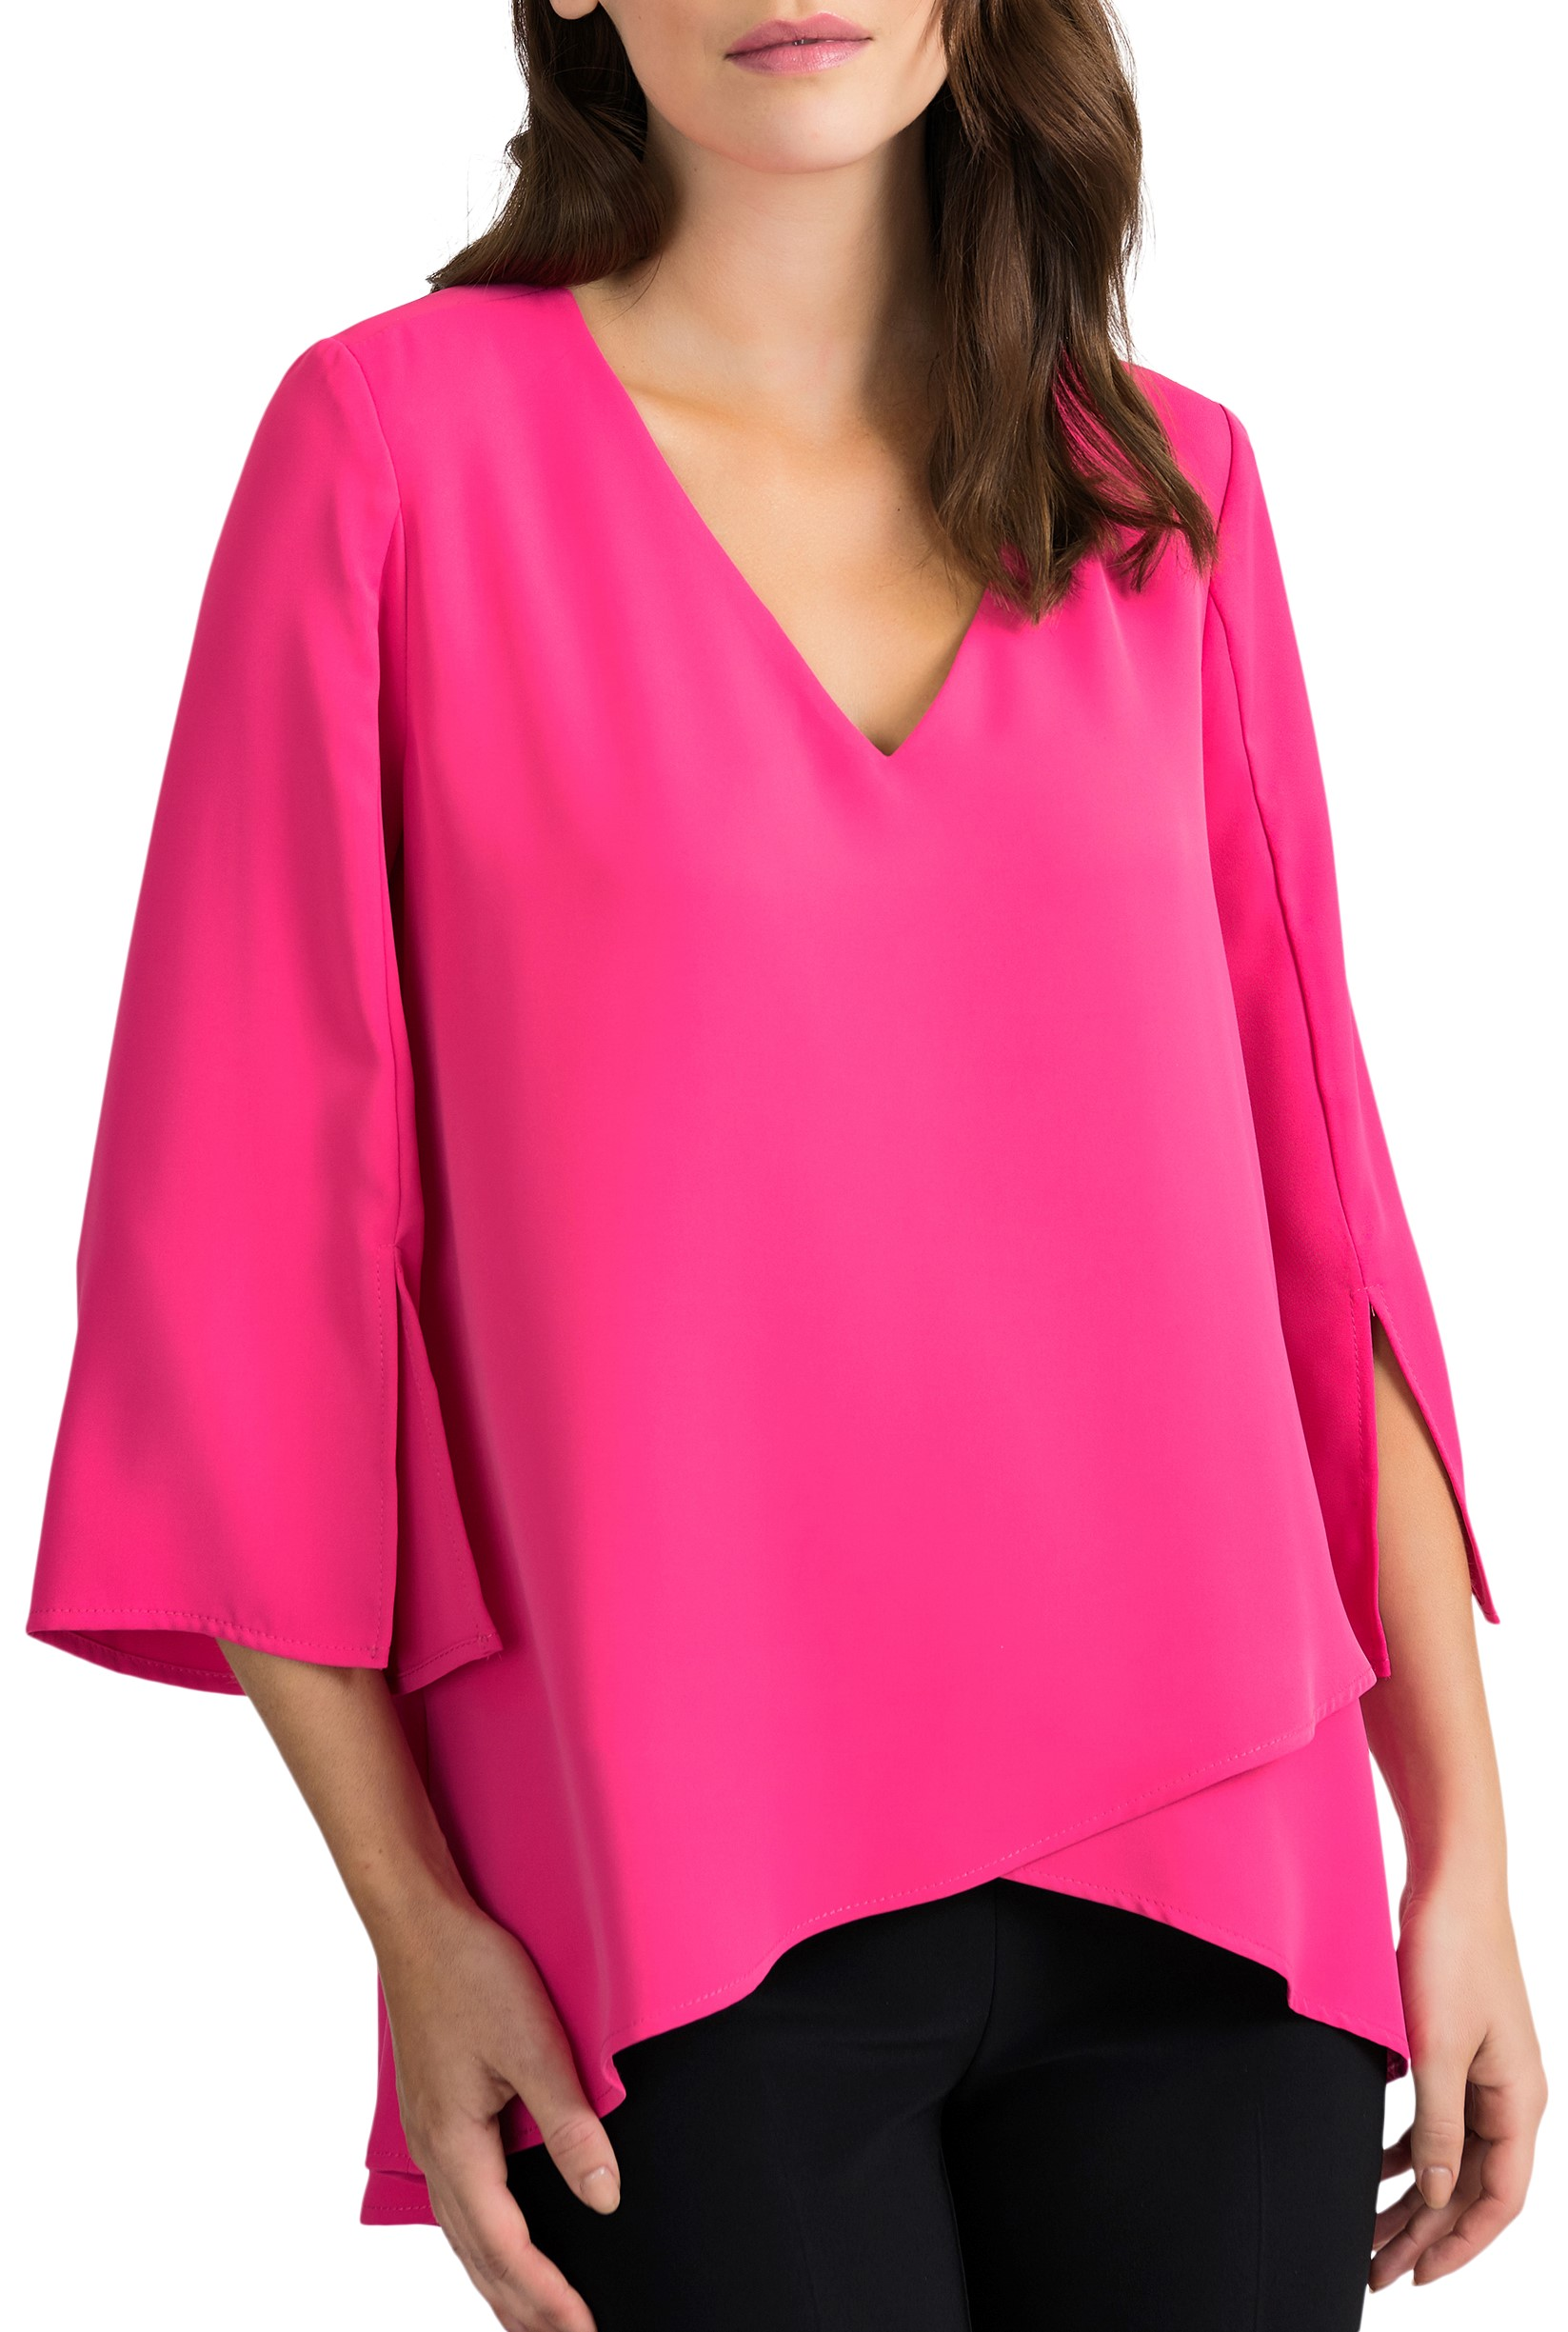 Joseph Ribkoff Womens Blouse Style 201085, 2 Colors Available